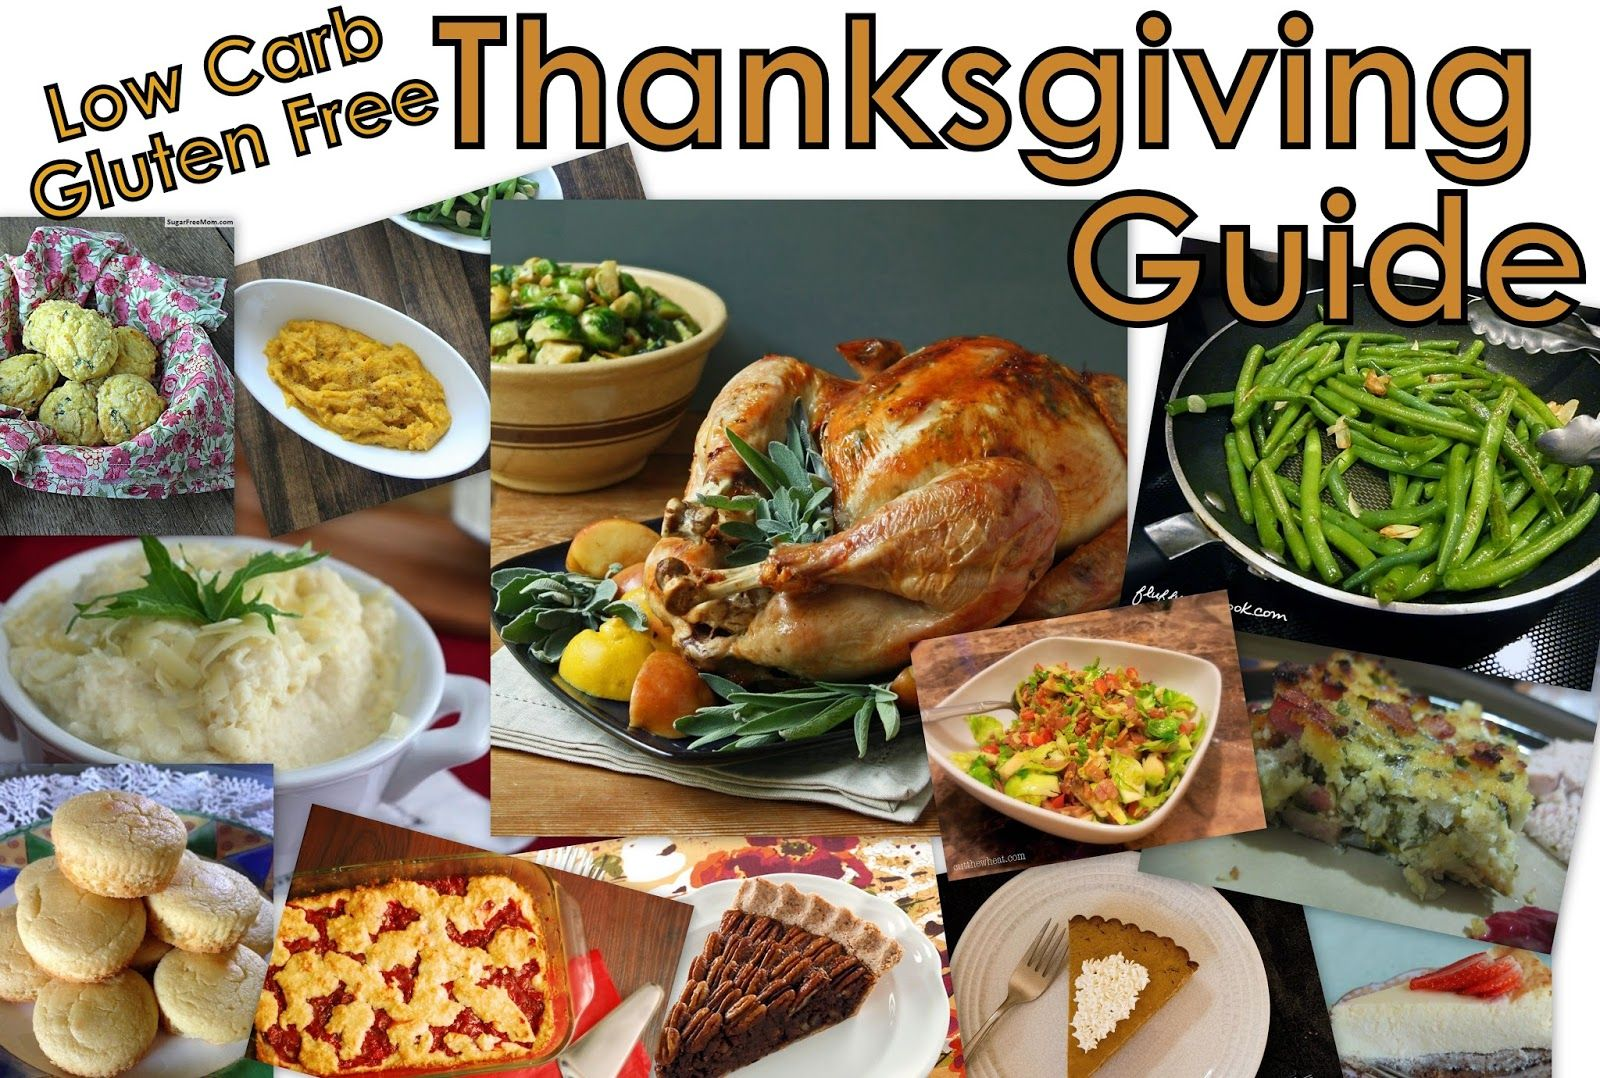 Cut the Wheat: Complete Low Carb Thanksgiving Guide